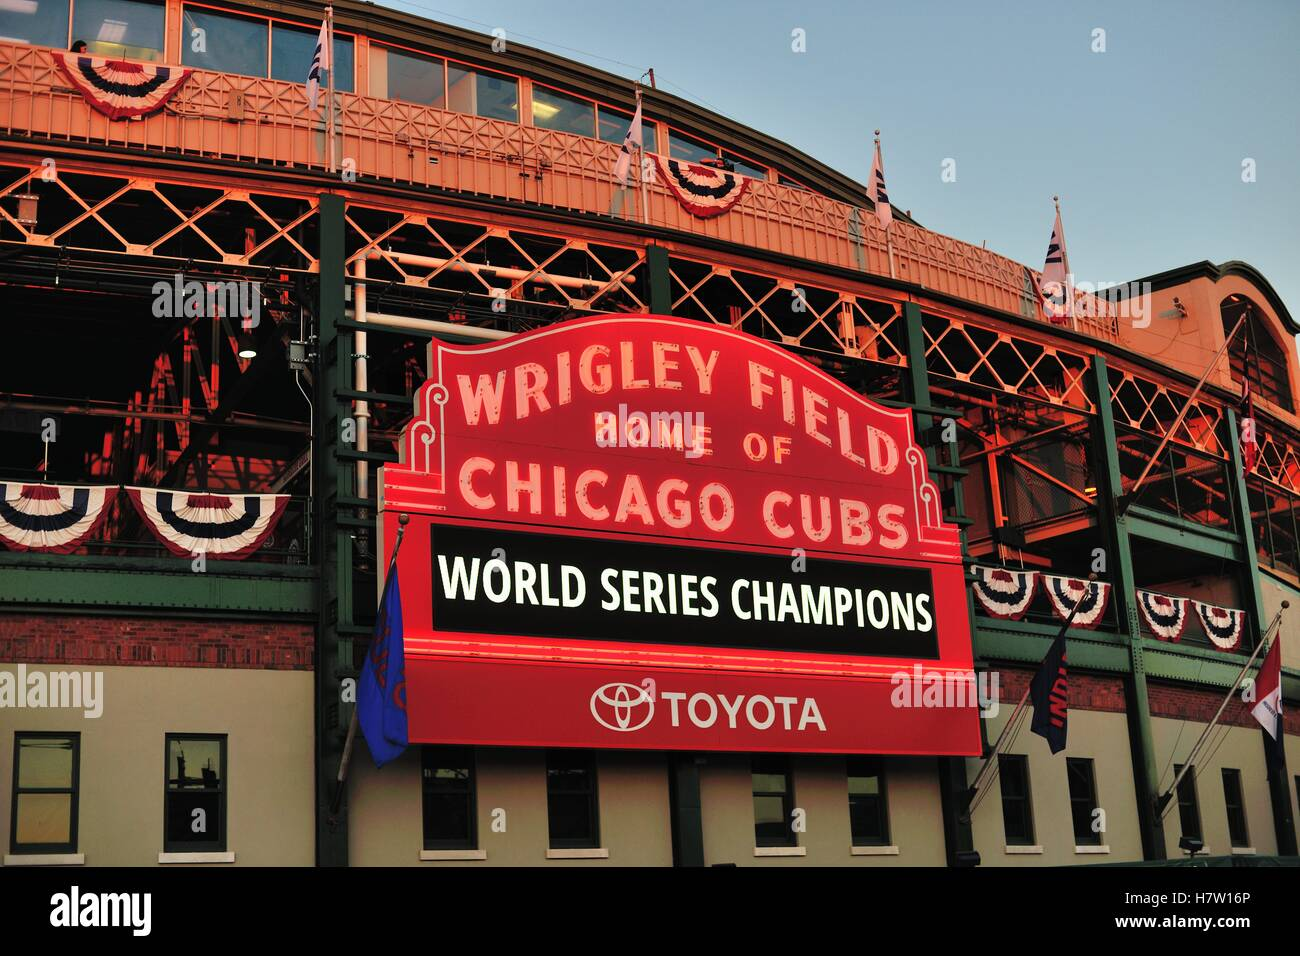 An exceedingly long wait was finally over as the Chicago Cubs won the World Series for the first time since 1908. - Stock Image